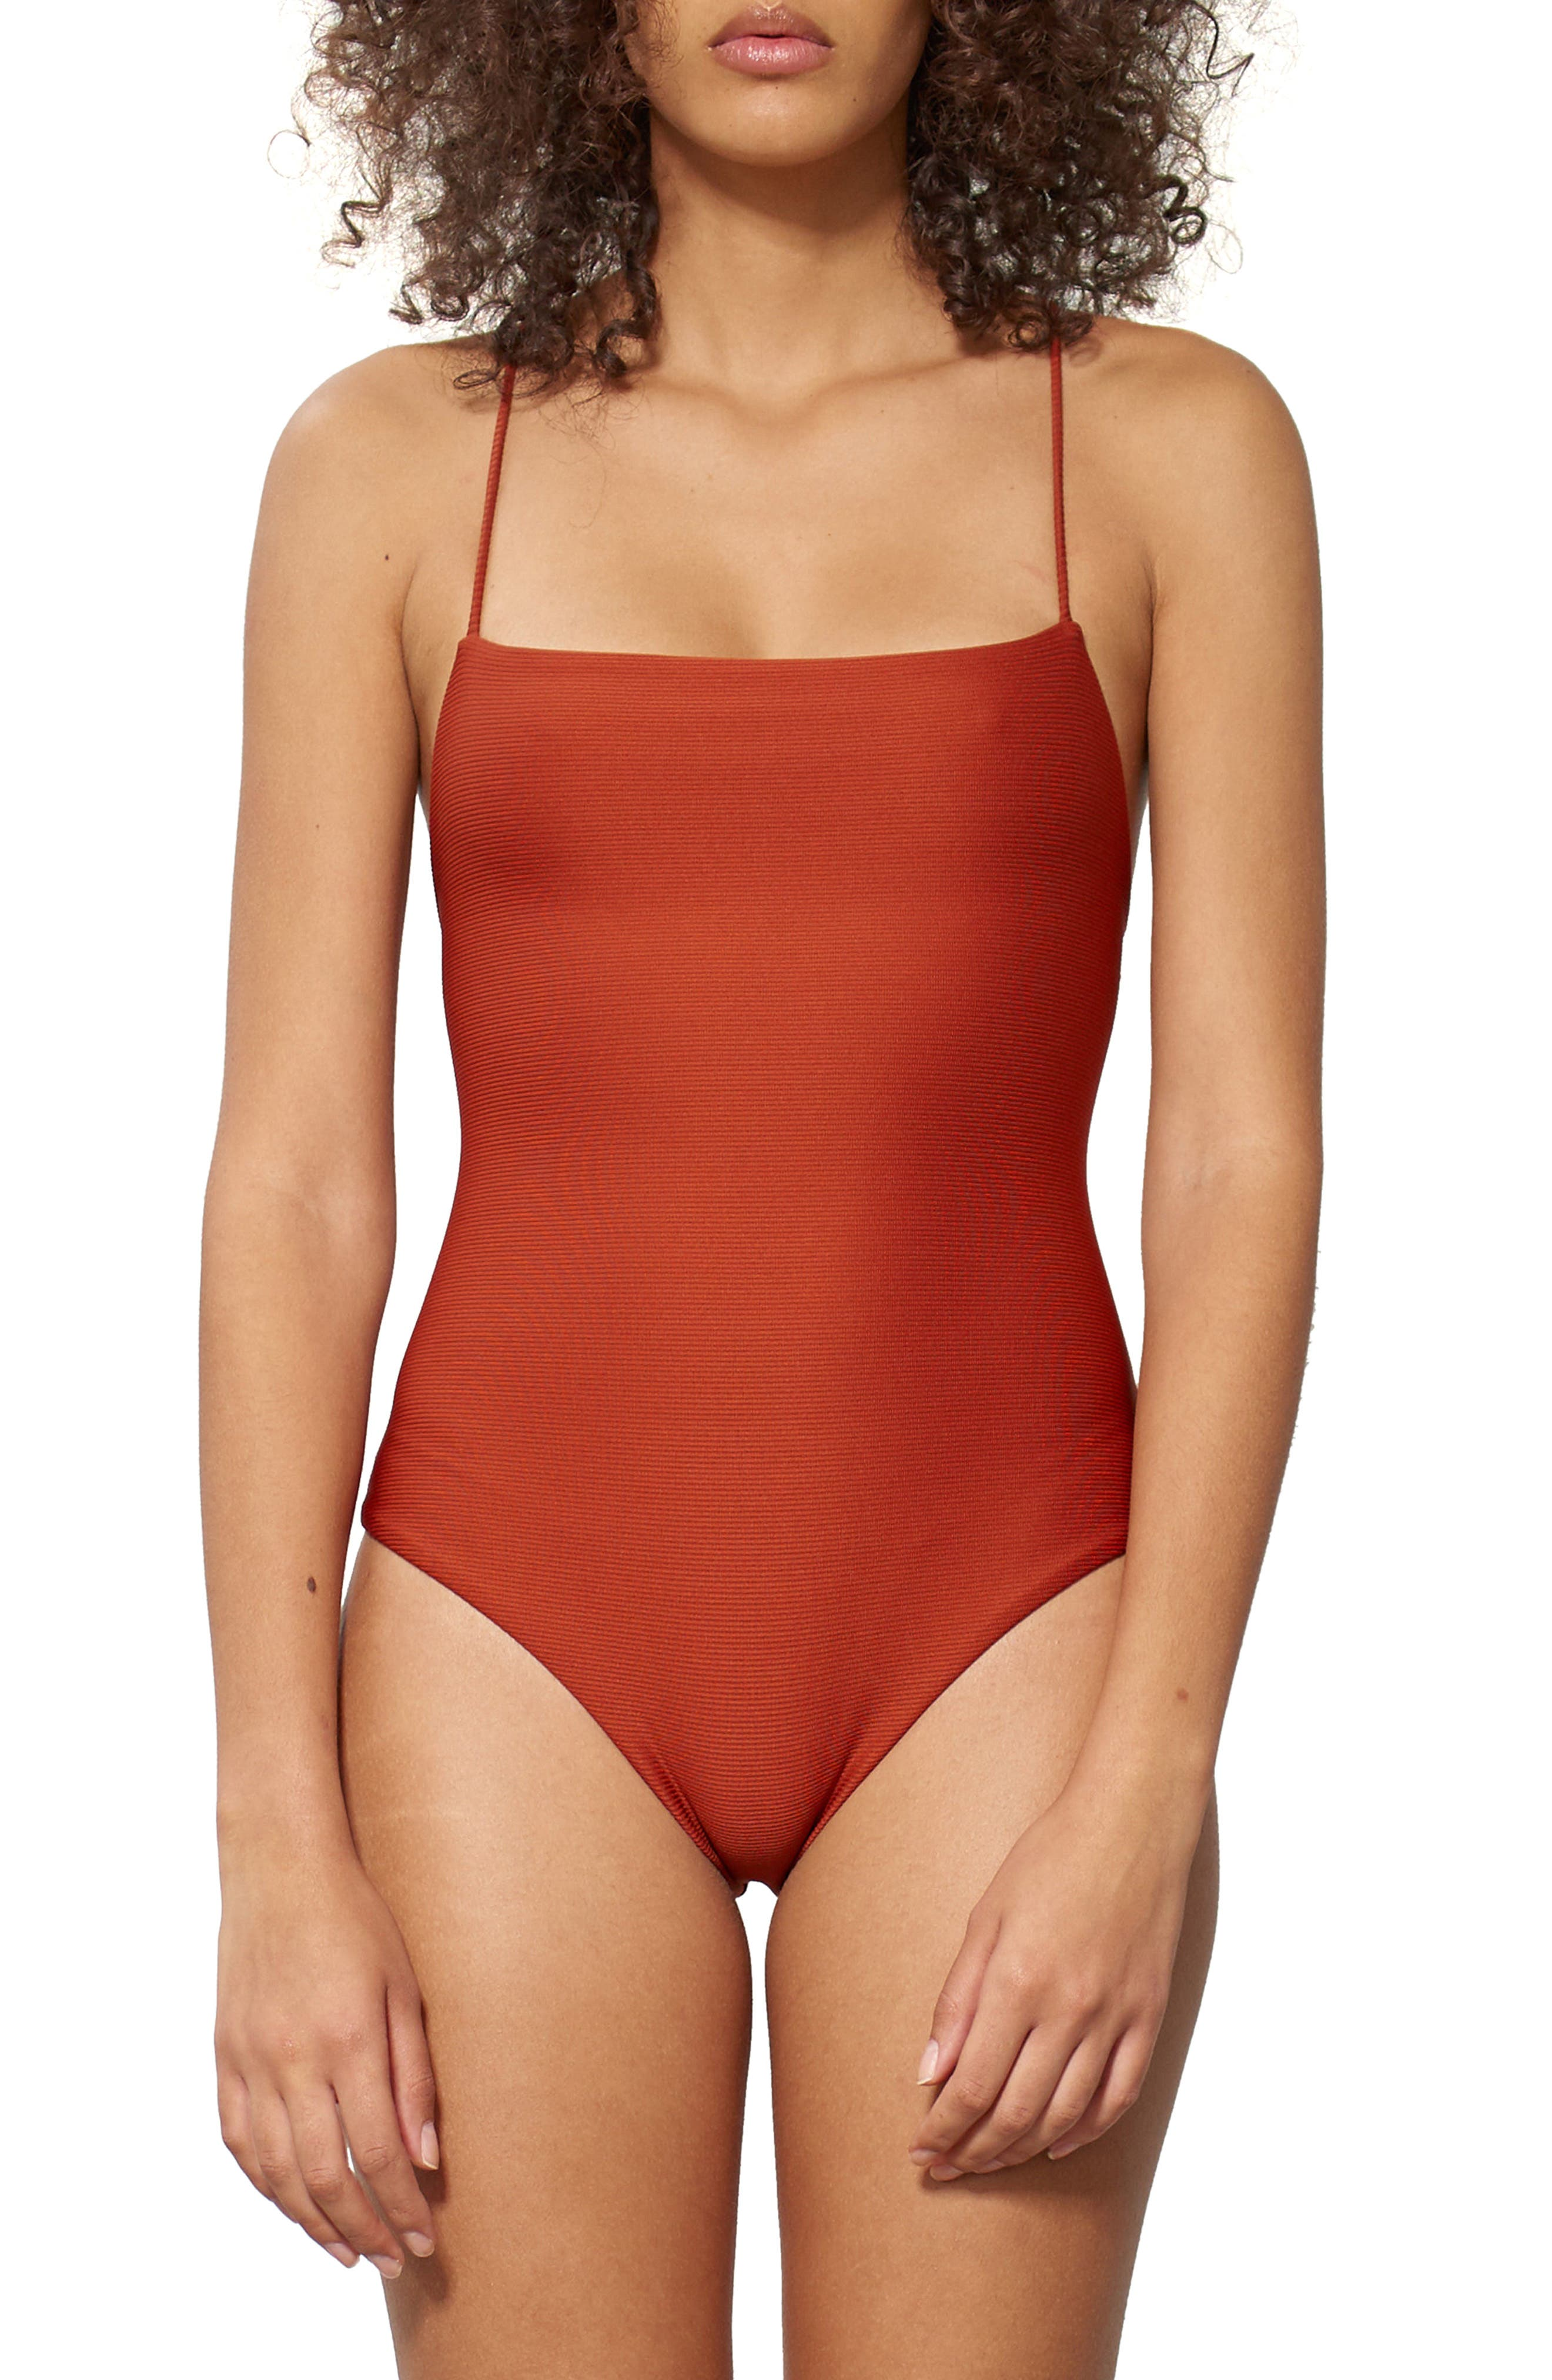 Olympia One-Piece Swimsuit,                             Main thumbnail 1, color,                             210